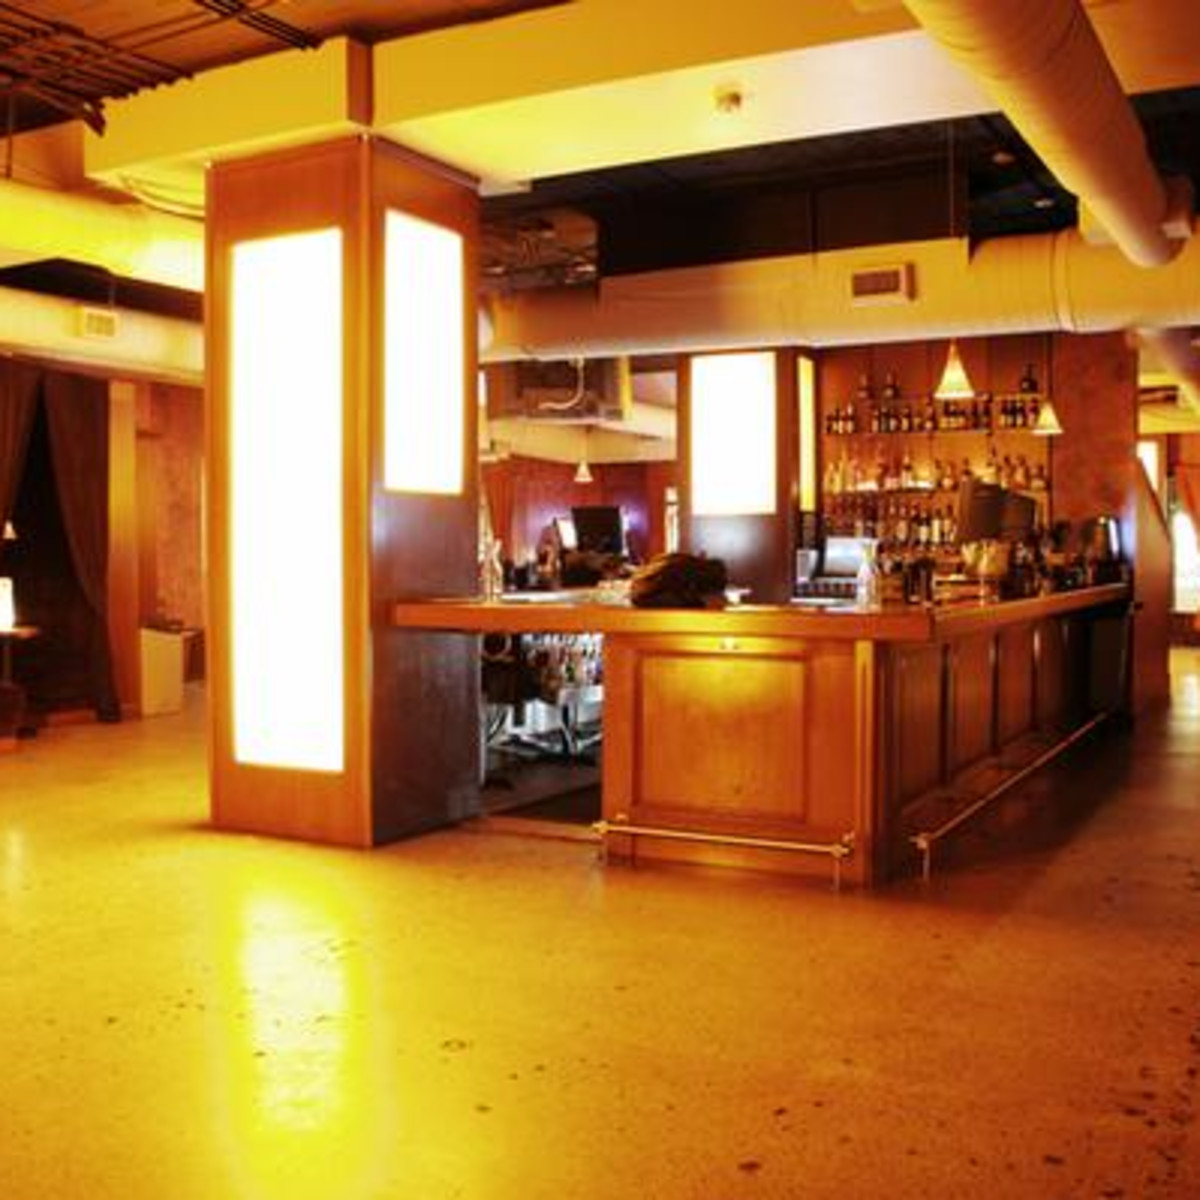 Austin_photo: places_drinks_the marq_room